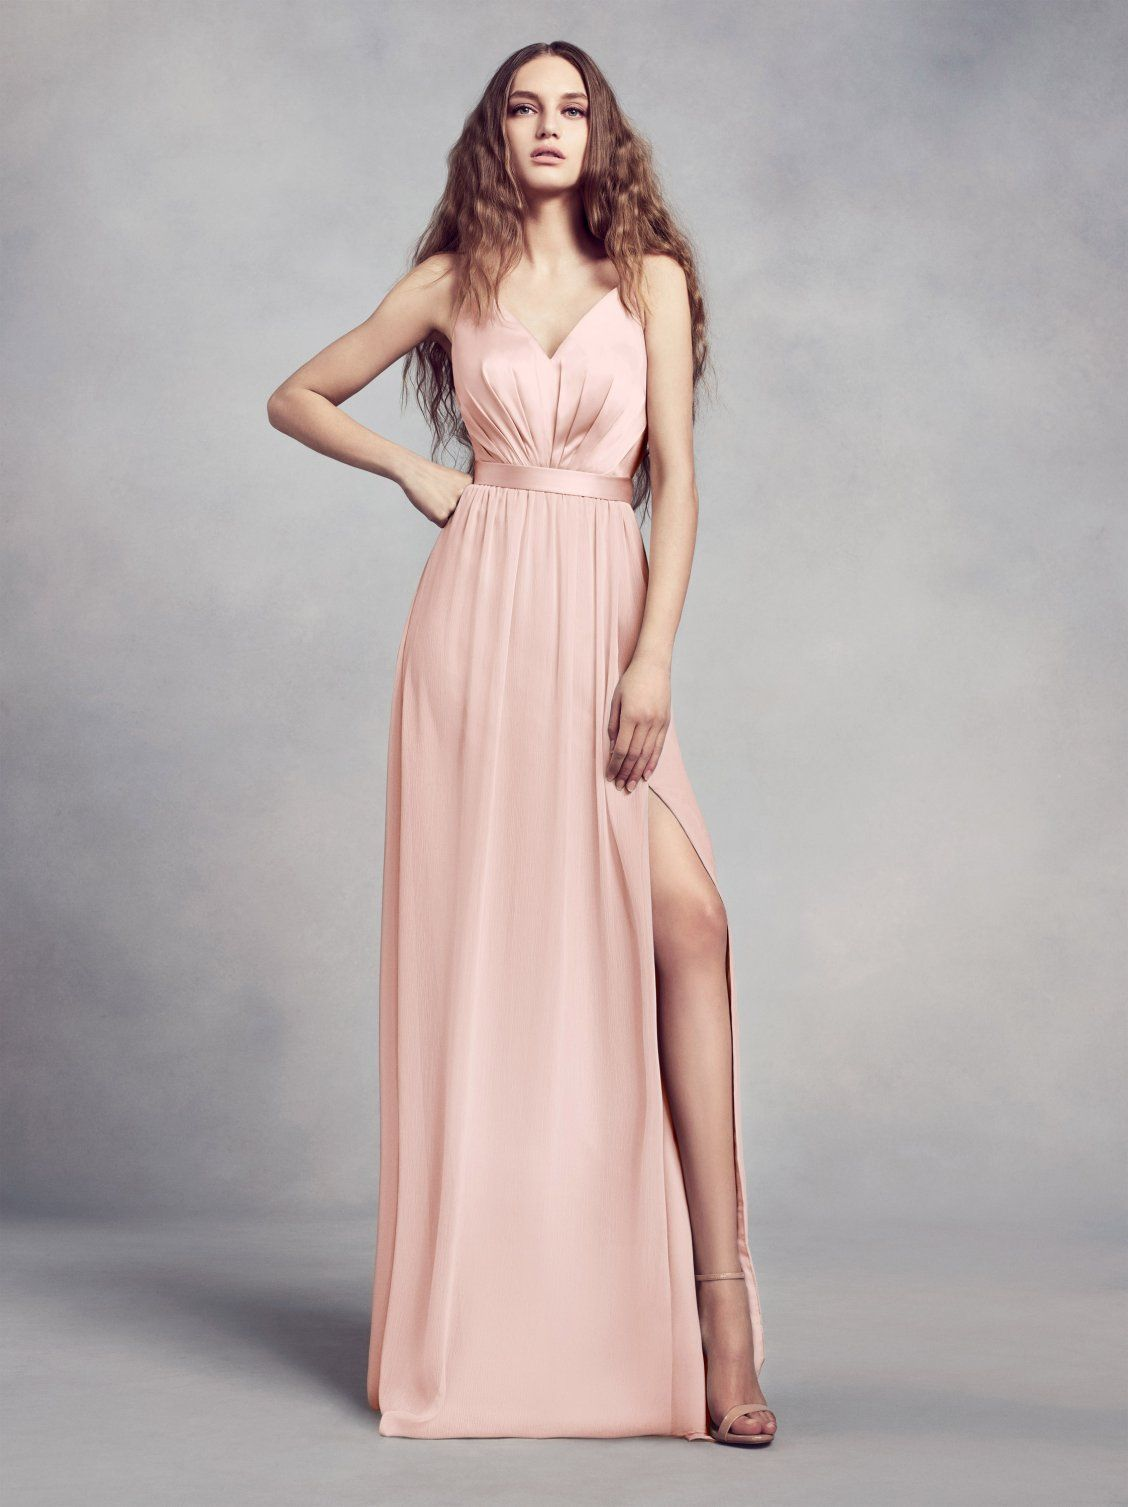 365f2624b729 White by Vera Wang Bridesmaid Dress Style VW360345, a charmeuse and chiffon  v-neck bridesmaid dress in Blush available at David's Bridal